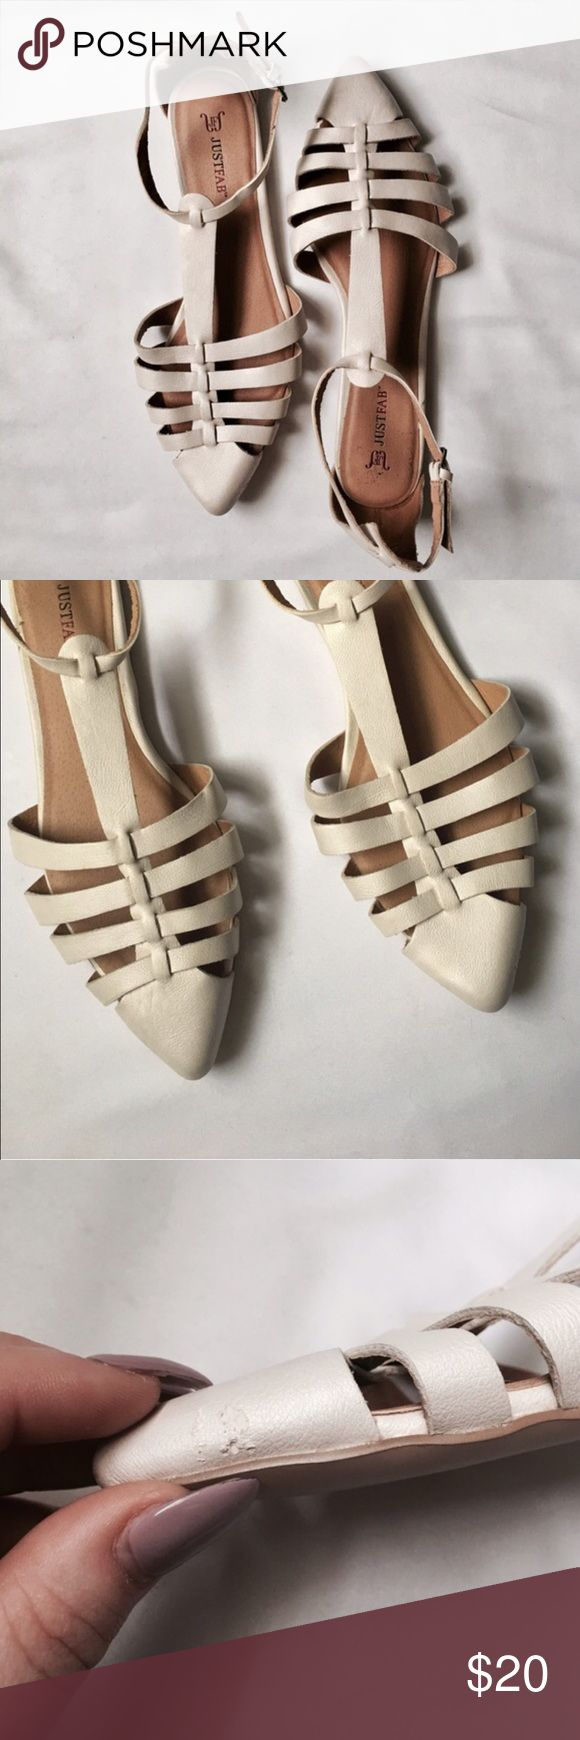 Just Fab   Leona Pointed Toe Flat in Ivory A great edgy flat for the spring and summer! The gladiator style is super on trend and these will look great with skinnies or a cute skirt! These are in great condition, very little wear on soles, one small scuff near toe. Zoom in for details! JustFab Shoes Flats & Loafers